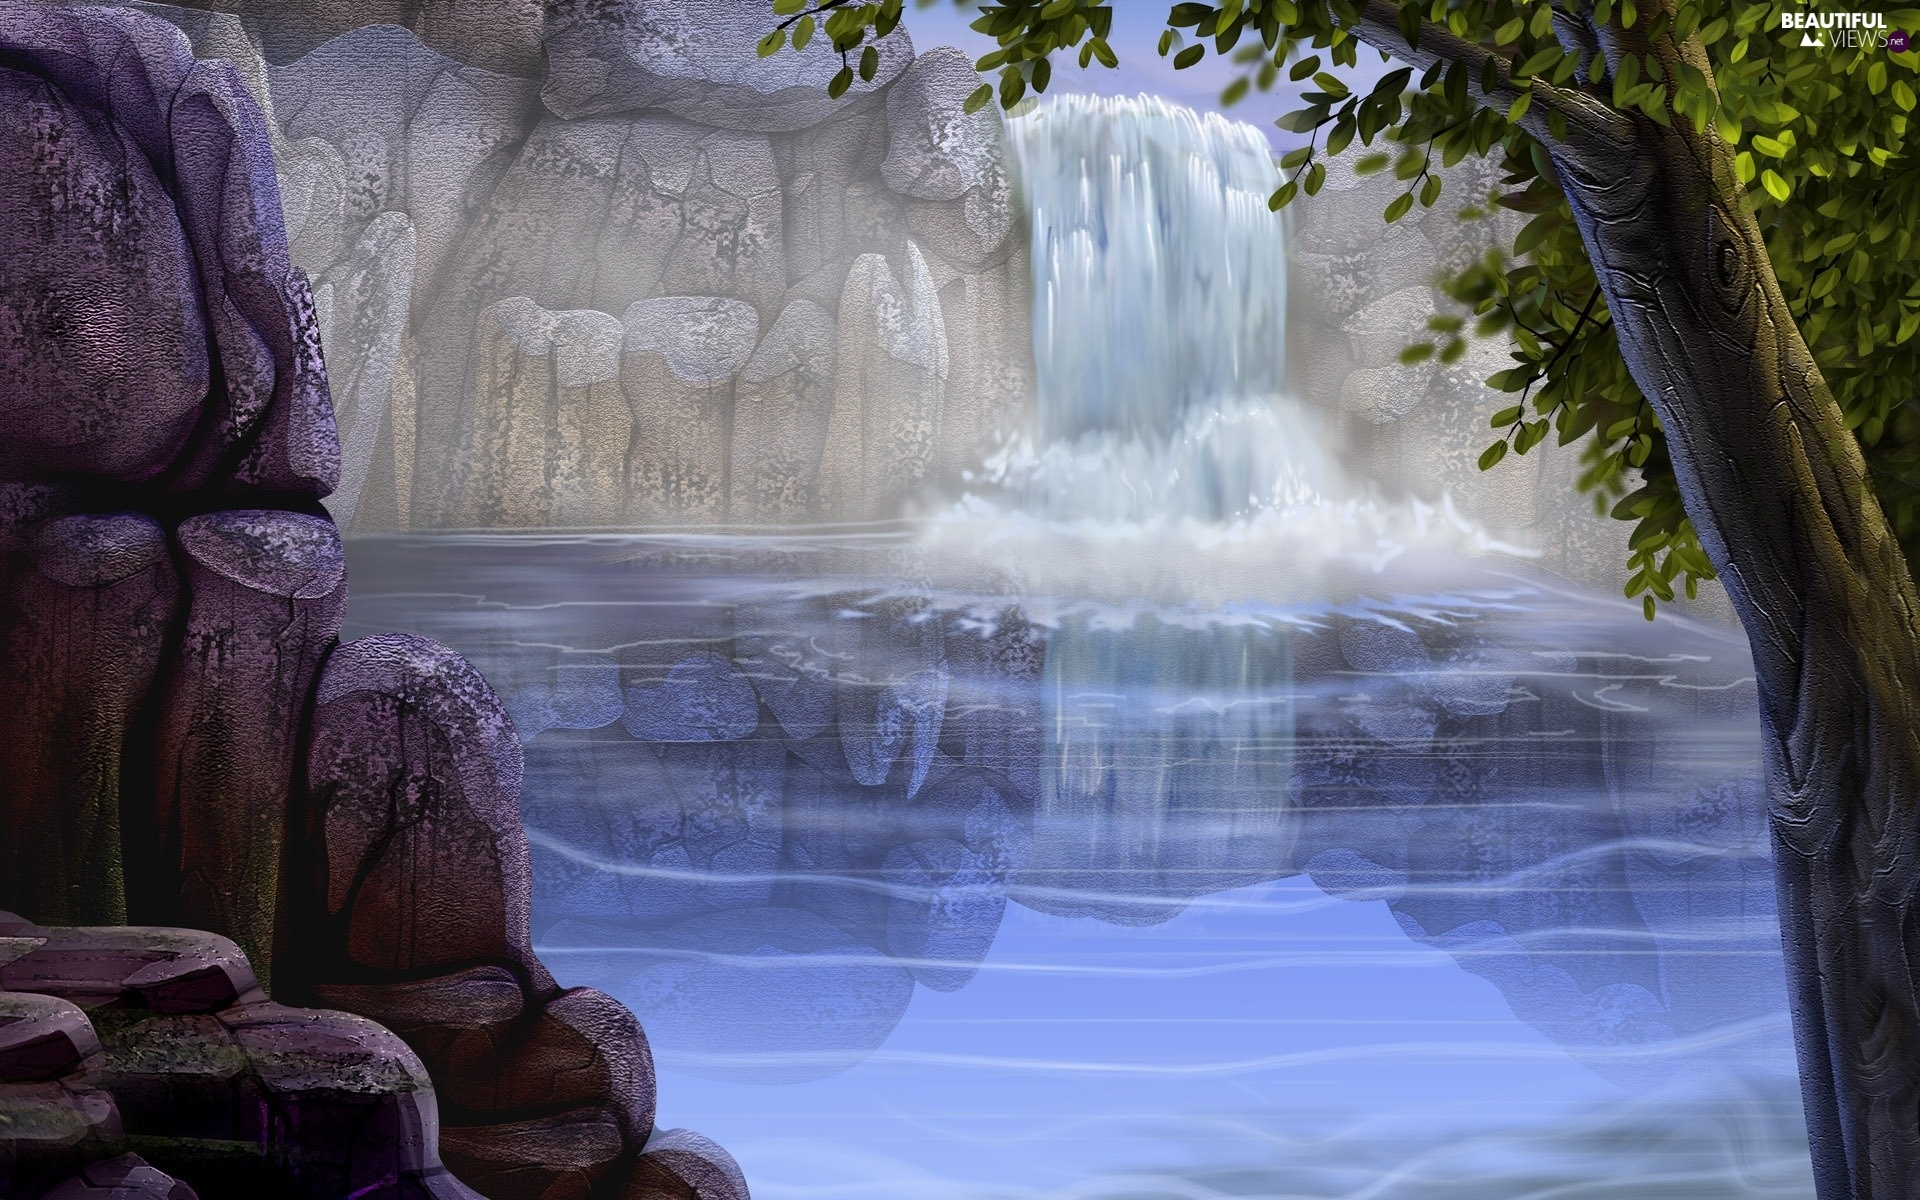 waterfall, viewes, Art, trees